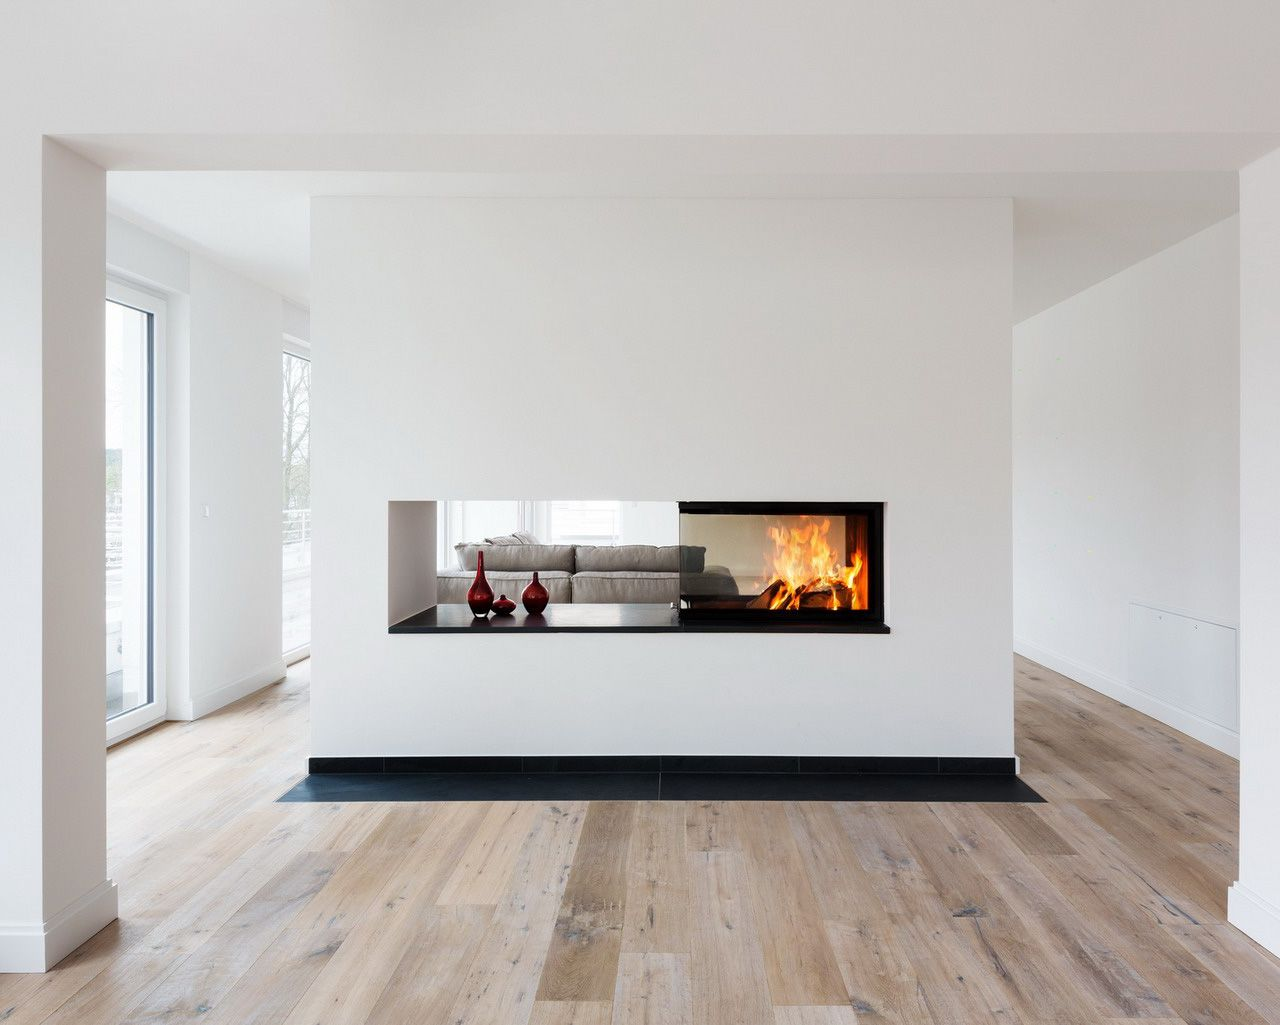 Kamin In Raumteiler Aquascape For Guest Room House Project Modern Fireplace Wall